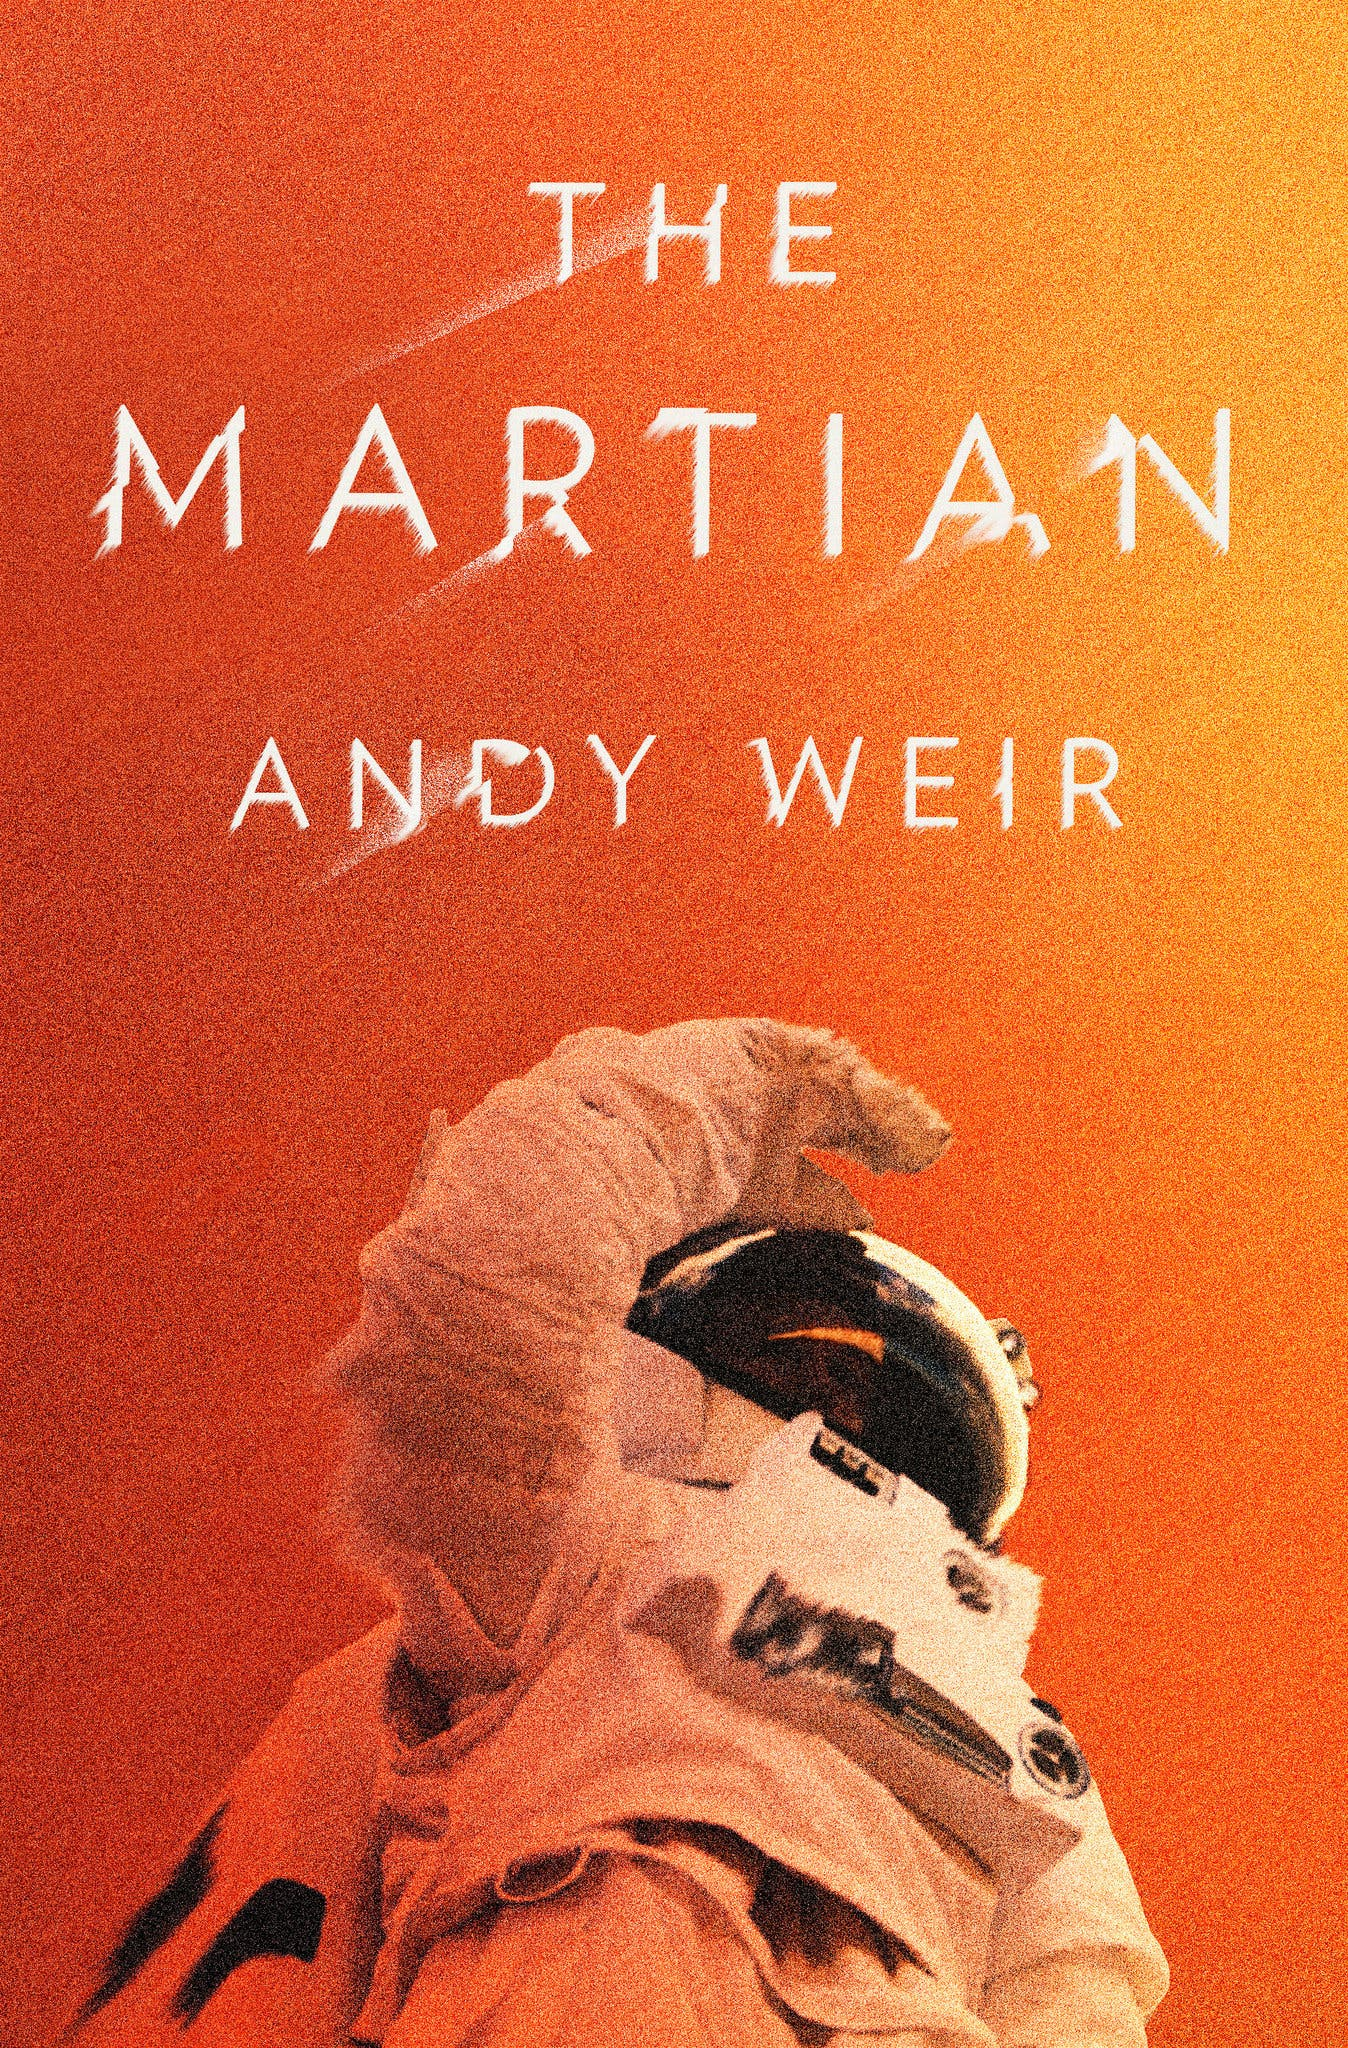 martianul andy weir